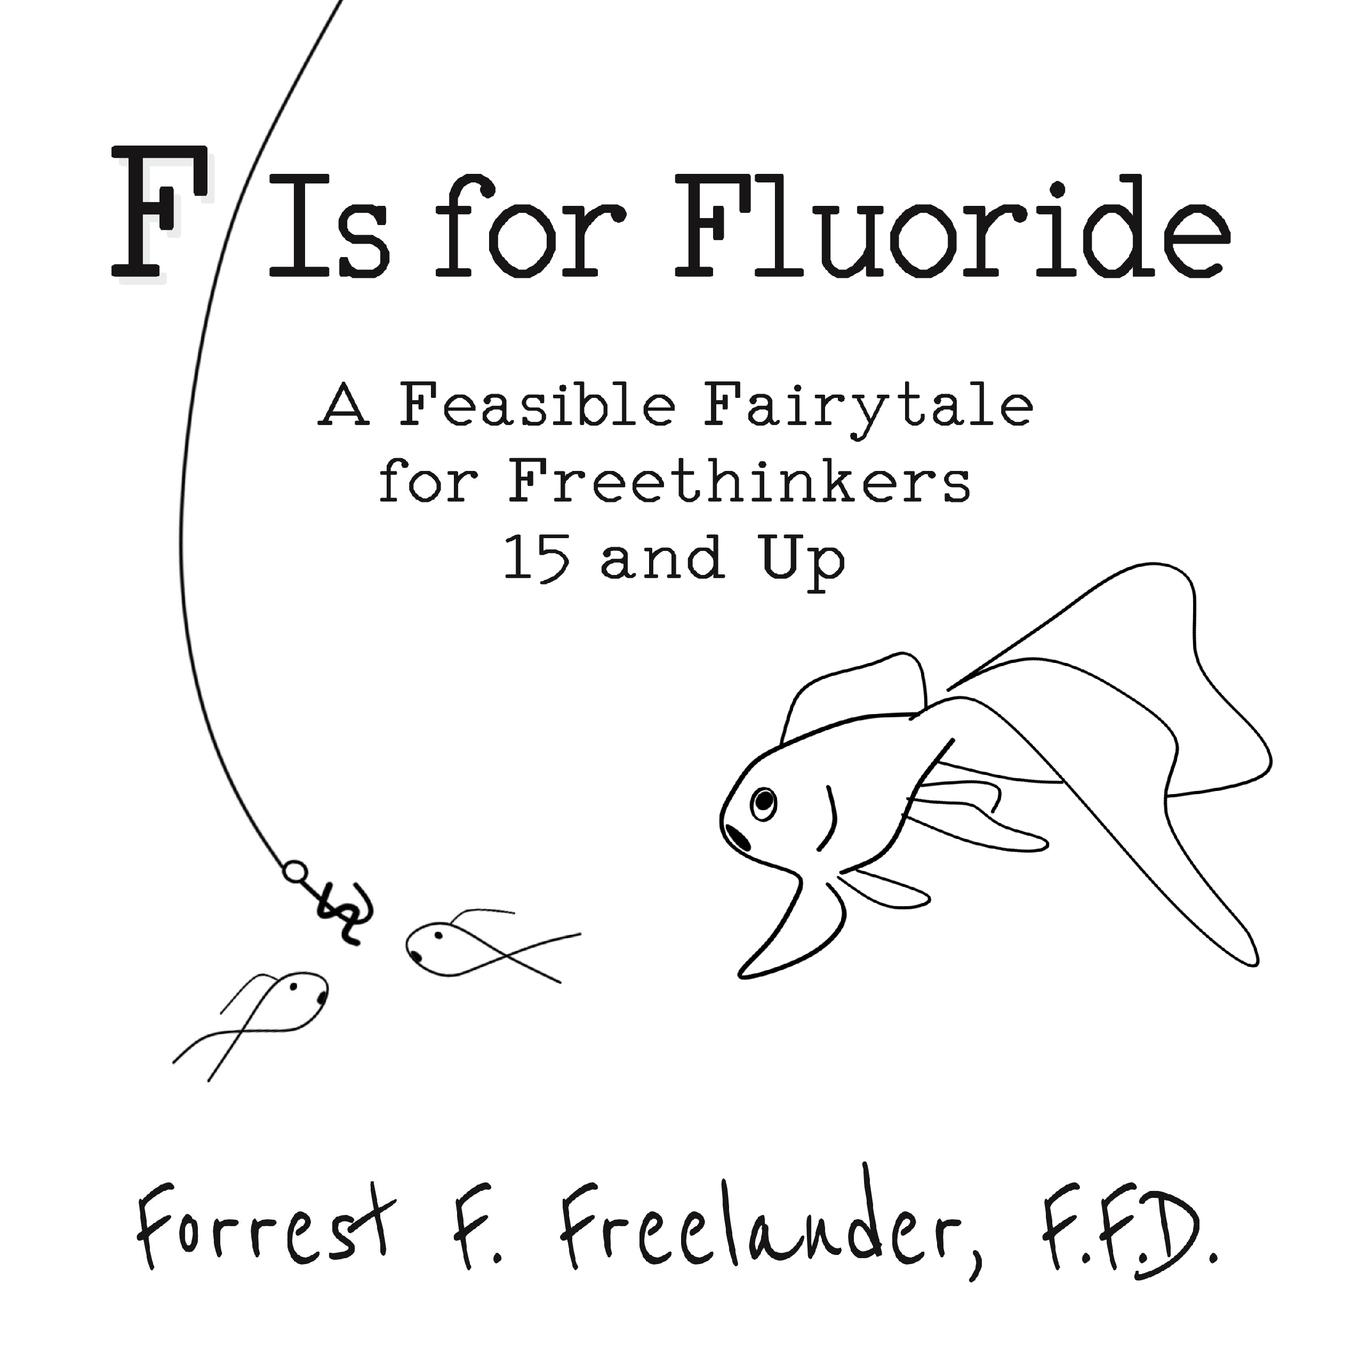 F Is for Fluoride: A Feasible Fairytale for Freethinkers 15 and Up (Paperback)